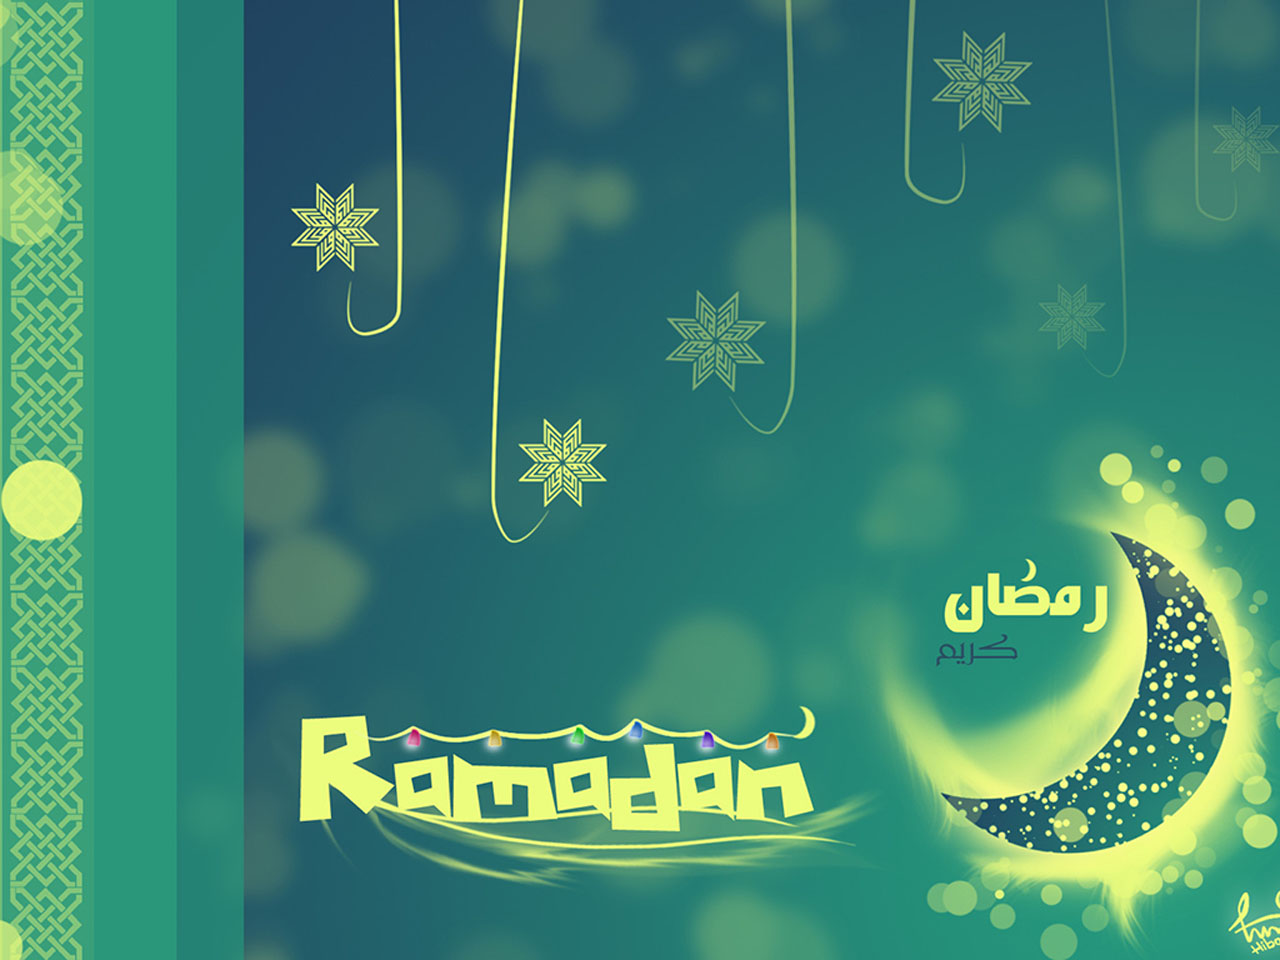 best ramadan wallpaper design background 2013